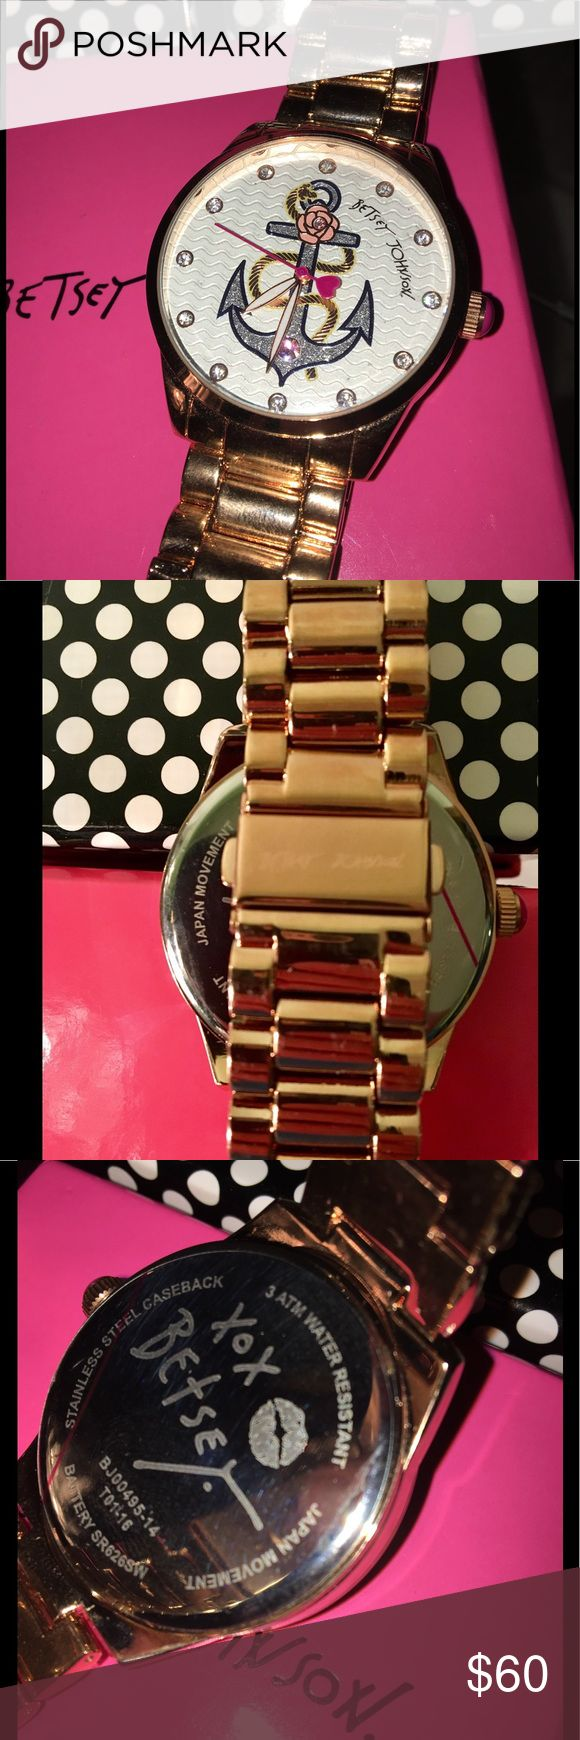 Betsey Johnson Anchor Watch w Box Beautiful Betsey Johnson rose-toned anchor watch with rhinestones. Clear sticker still on back. Box included without insert. Worn once. Betsey Johnson Accessories Watches